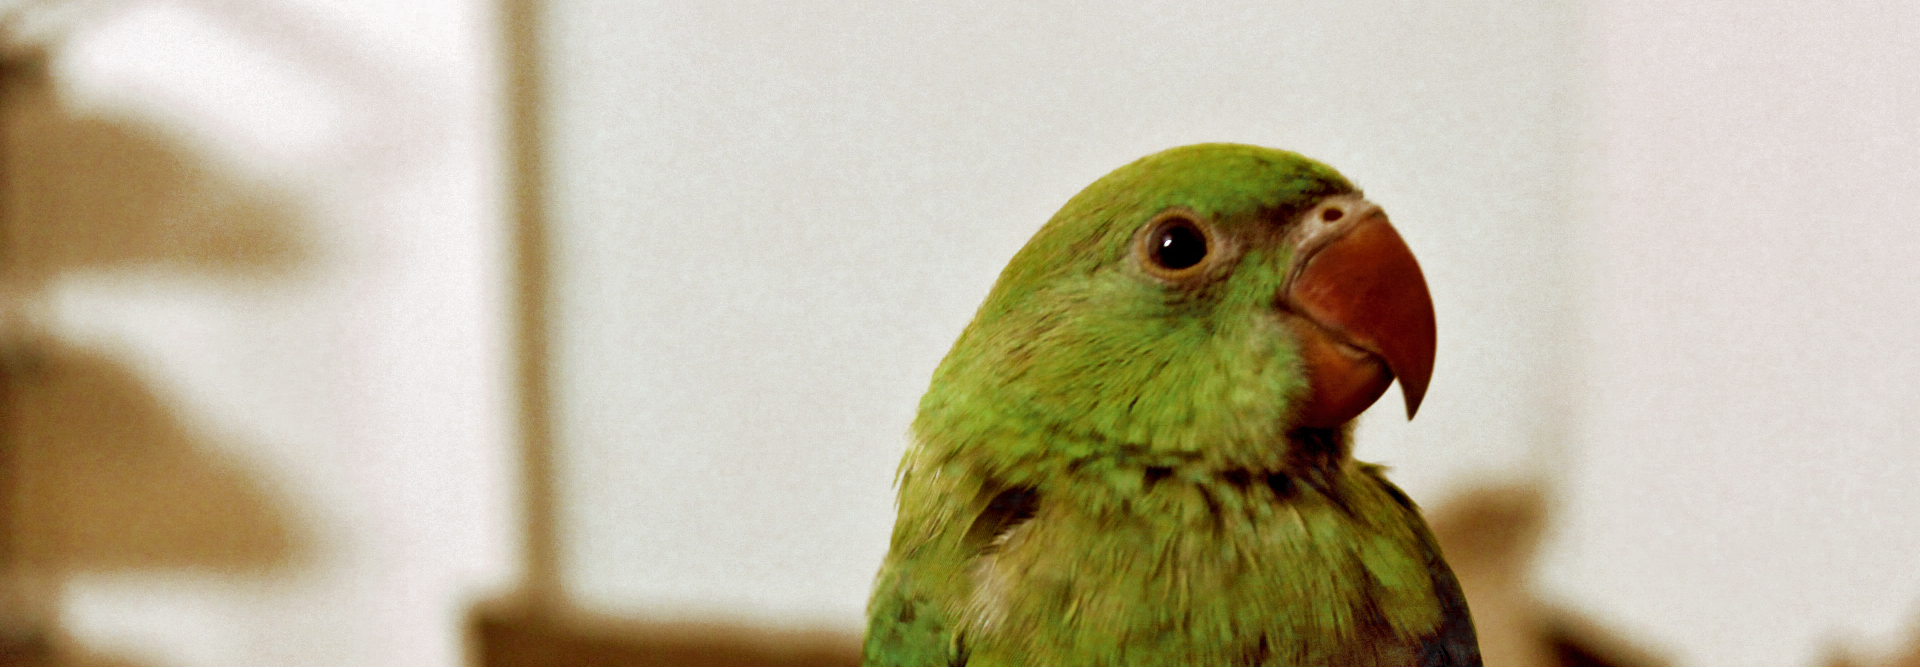 With bright green plummage, parakeets do in fact talk, if trained